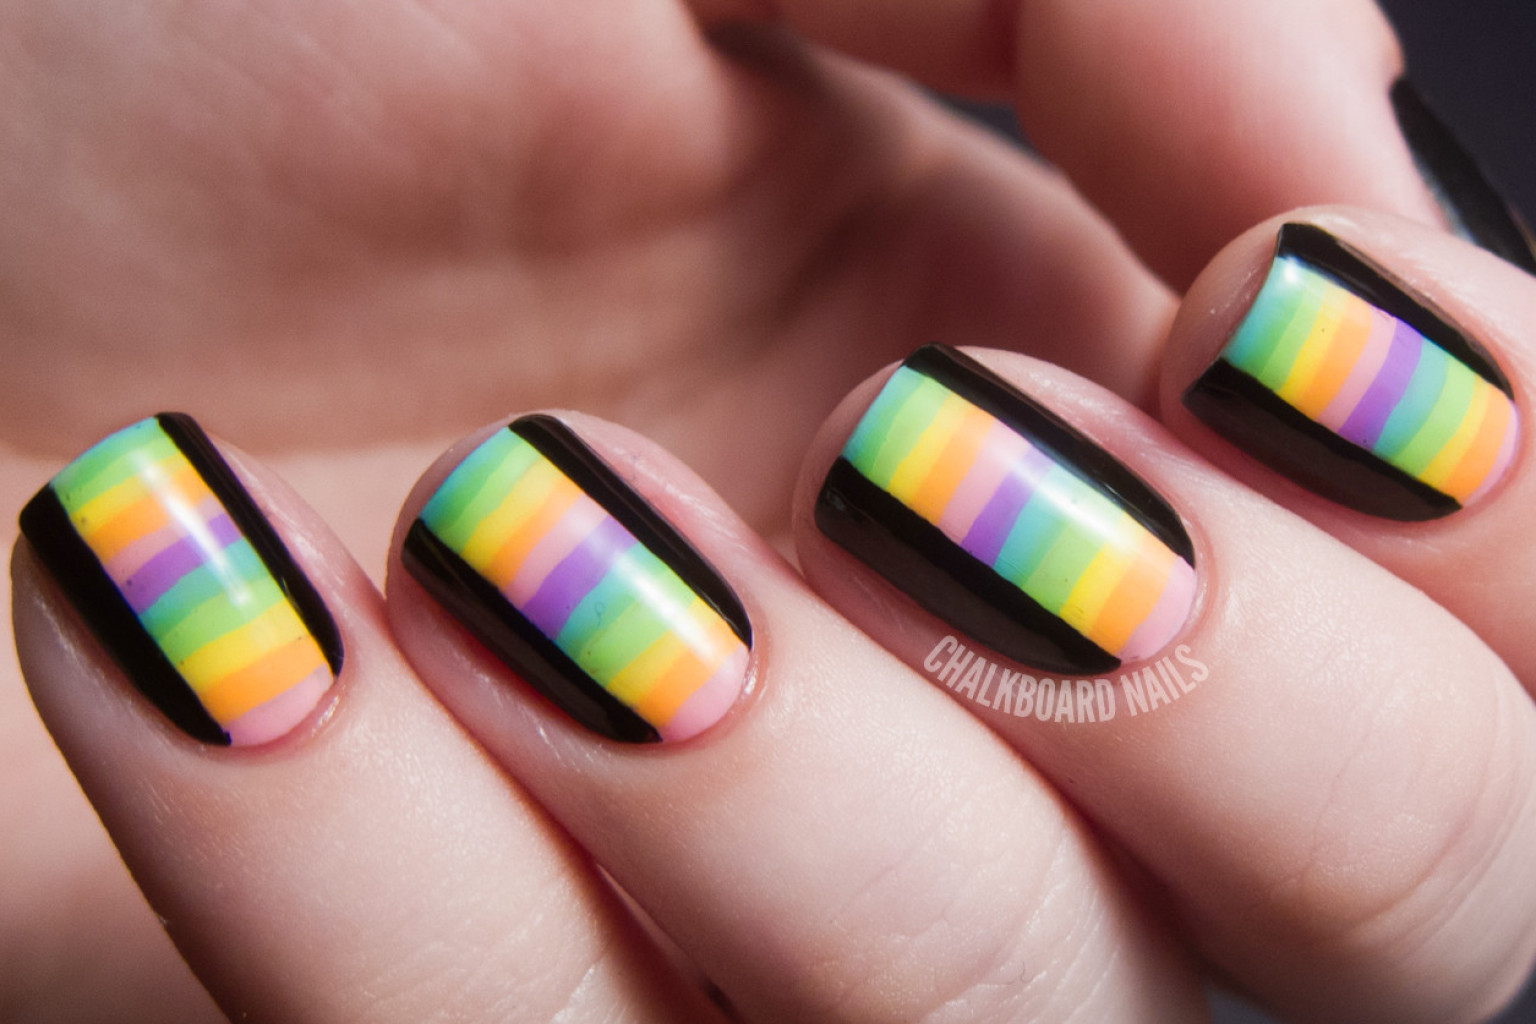 Diy nail ideas kaleidoscope nail art and more of our manicures from diy nail ideas kaleidoscope nail art and more of our manicures from this weekend photos huffpost solutioingenieria Images